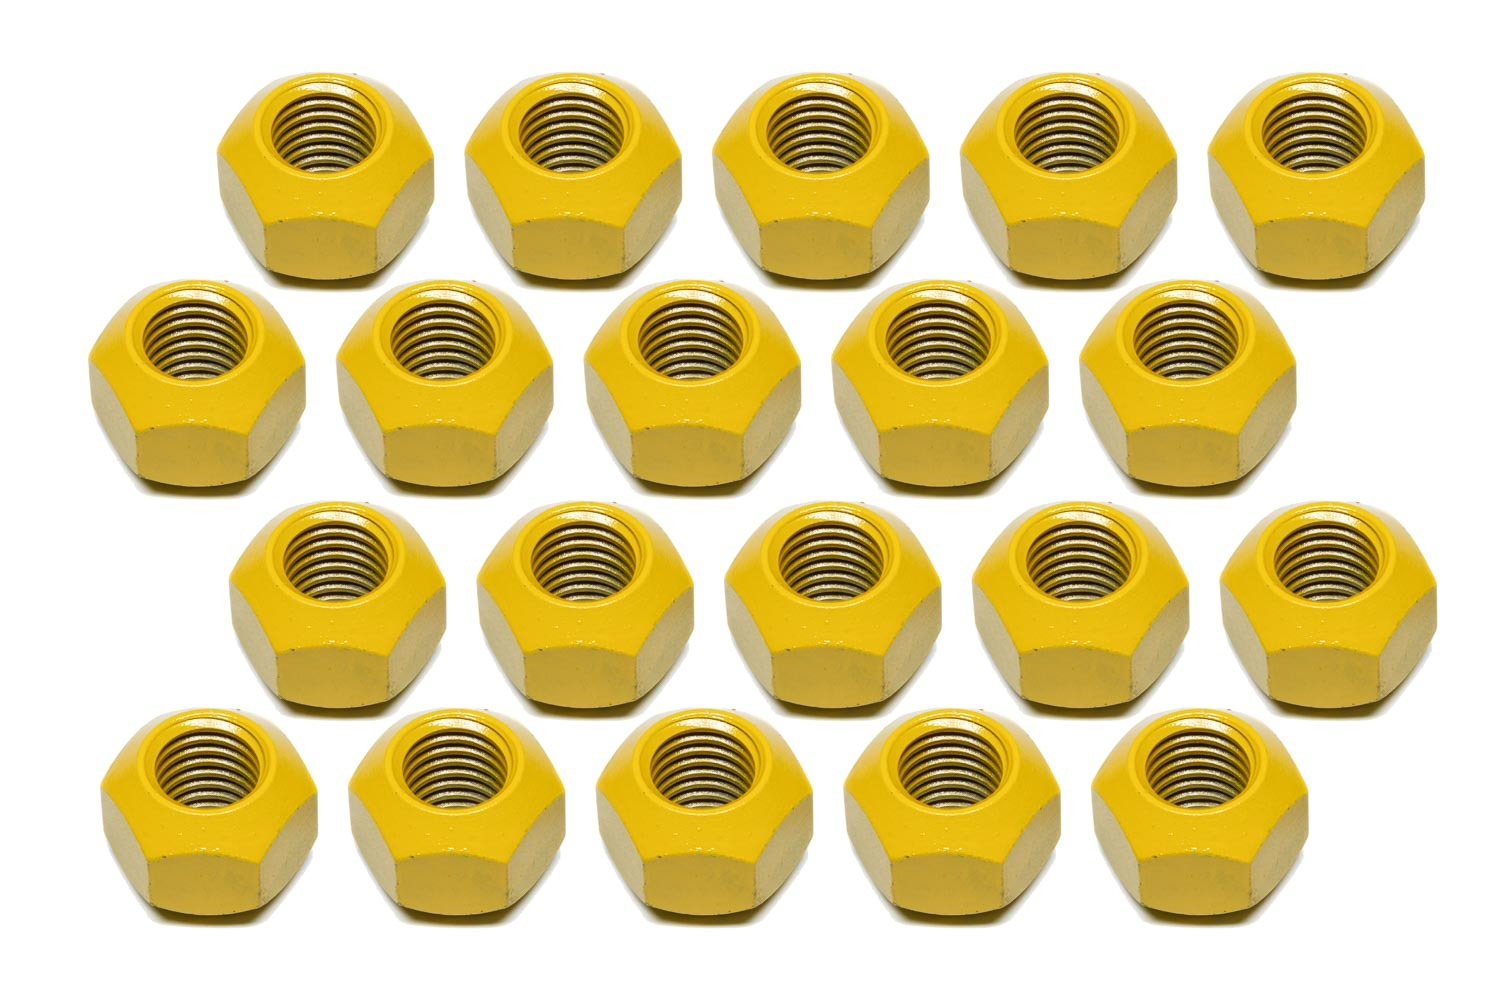 KLUHSMAN RACING PRODUCTS Lugnut 20pk 5/8-11 Steel Teflon Coated Double Ang P/N - KRC-8212T*